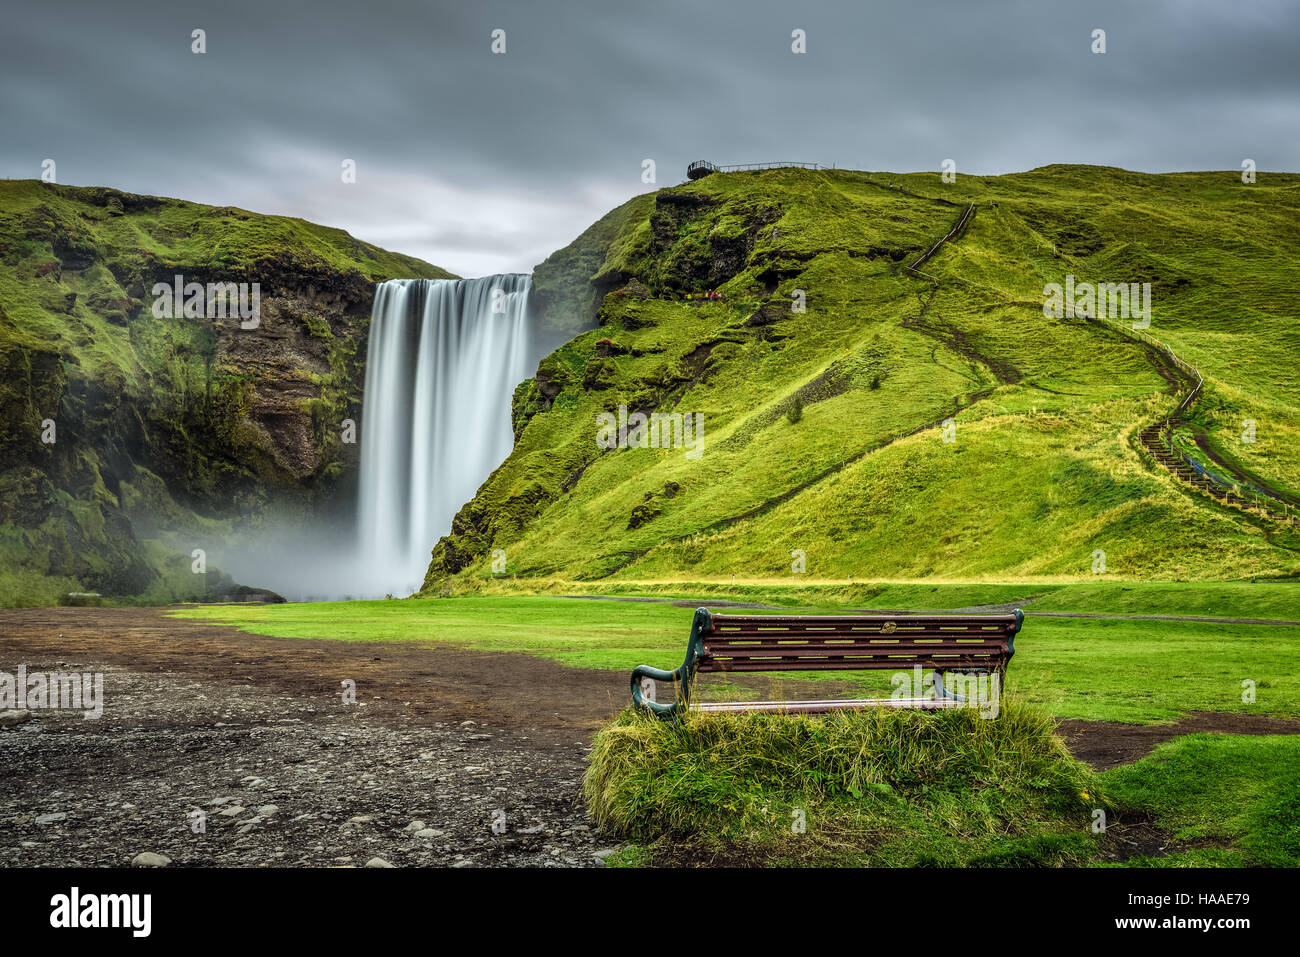 Bench at the famous Skogafoss waterfall in southern Iceland. Long exposure. - Stock Image